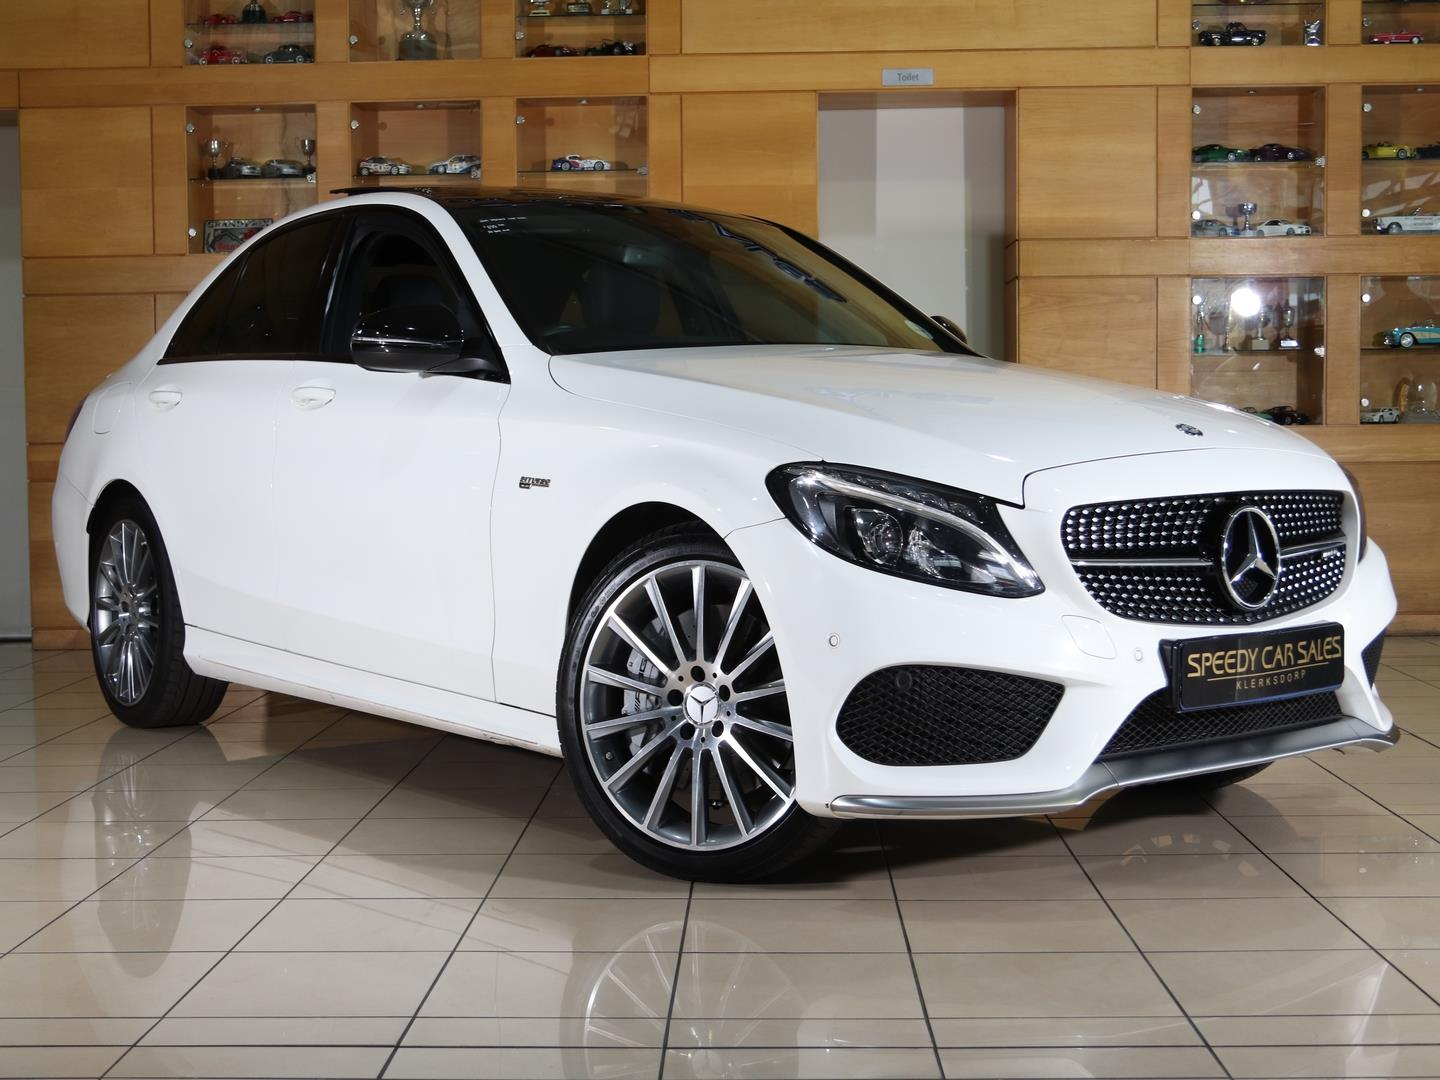 Mercedes-AMG C-Class (C43 4Matic) at Speedy Car Sales